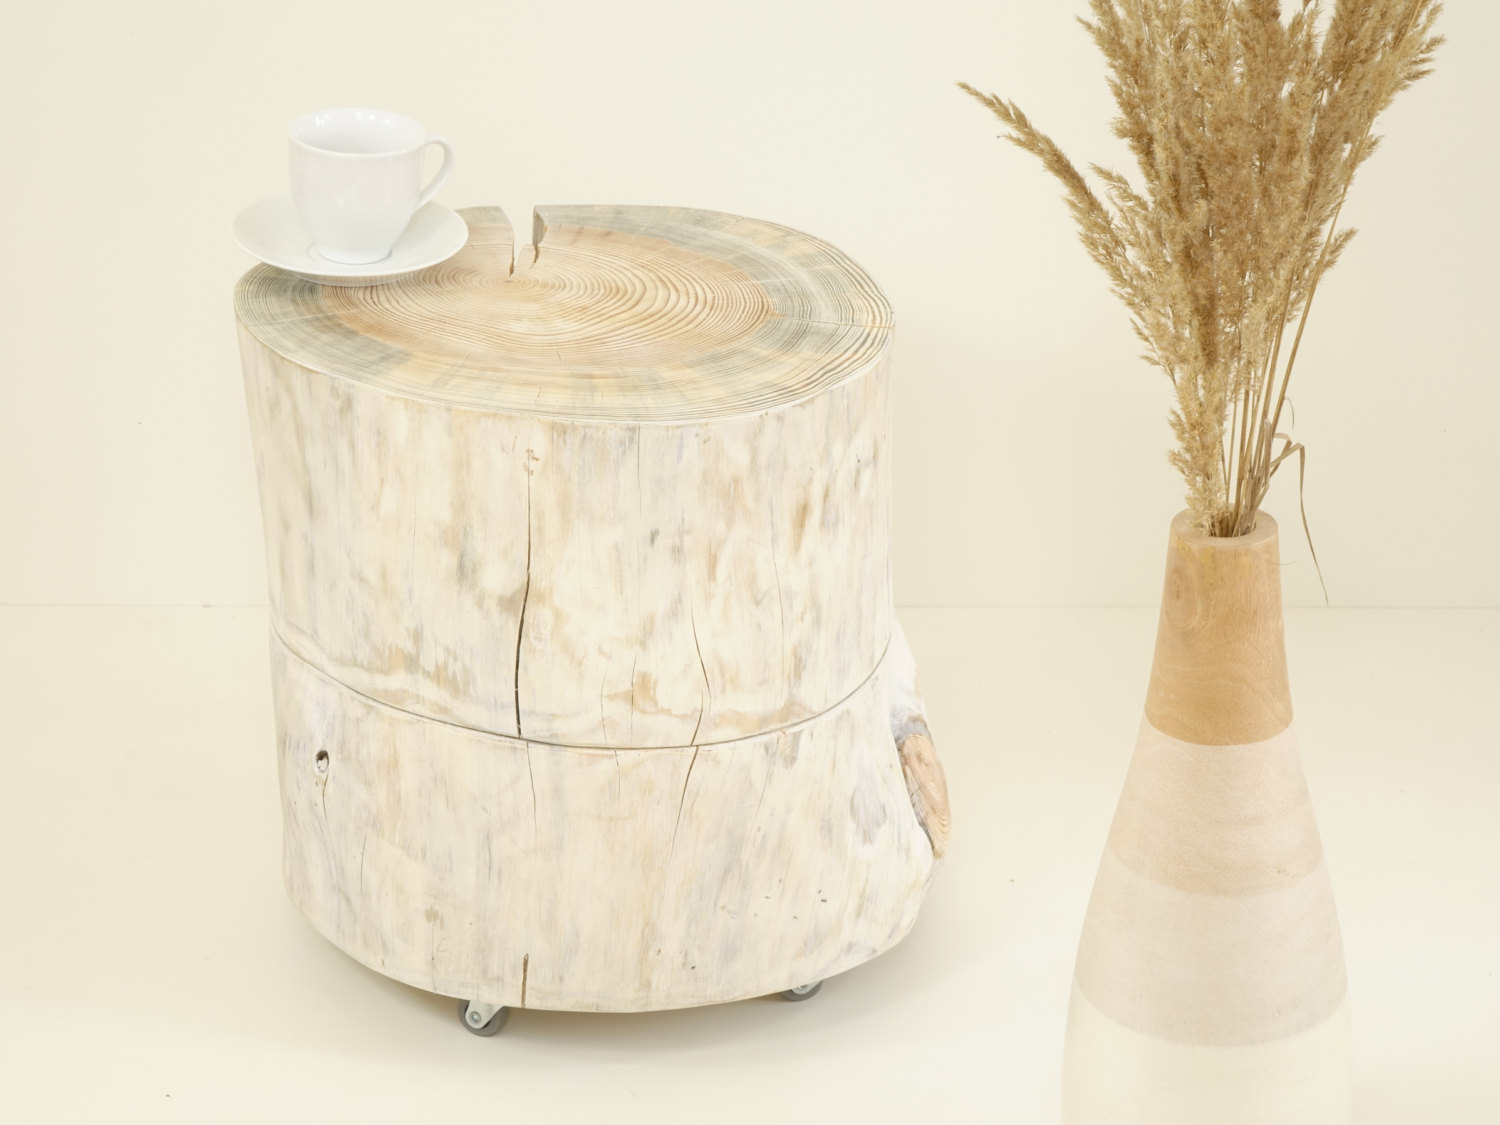 White Cocktail Table Scandinavian Style White Wooden Stump Side Table On  Rolling Casters Baumstamm Tisch Ceppo